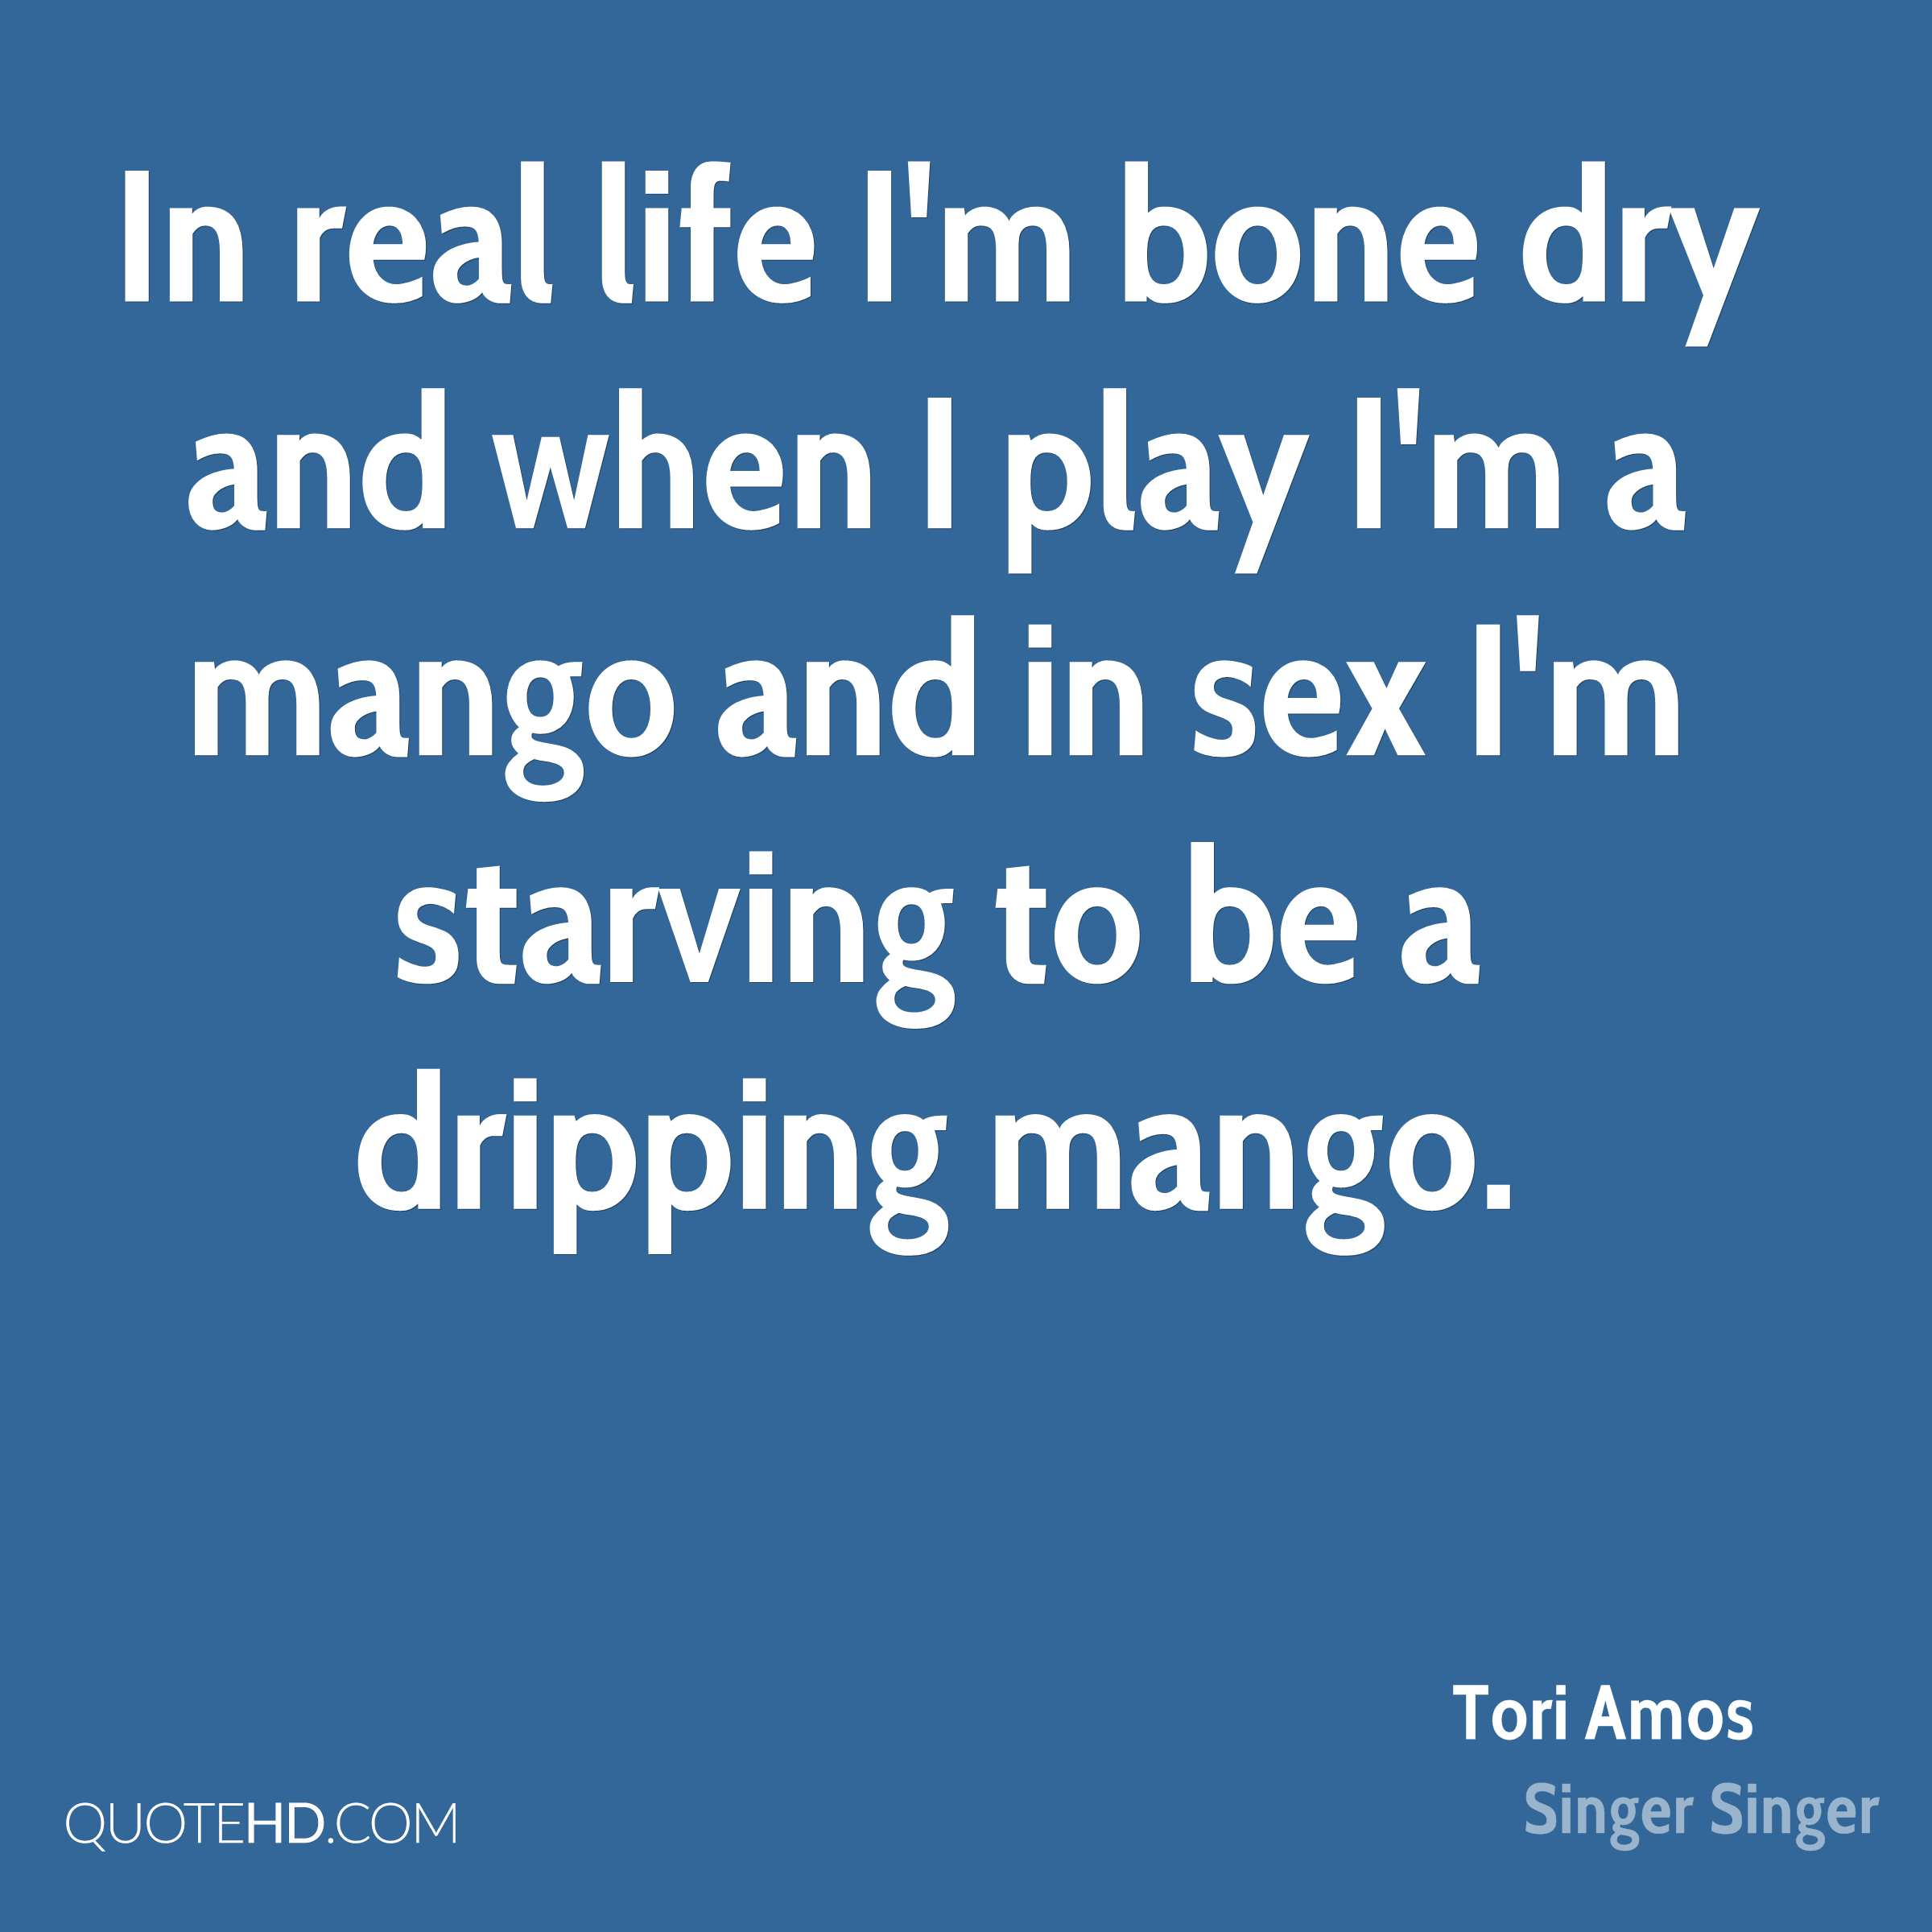 In real life I'm bone dry and when I play I'm a mango and in sex I'm starving to be a dripping mango.